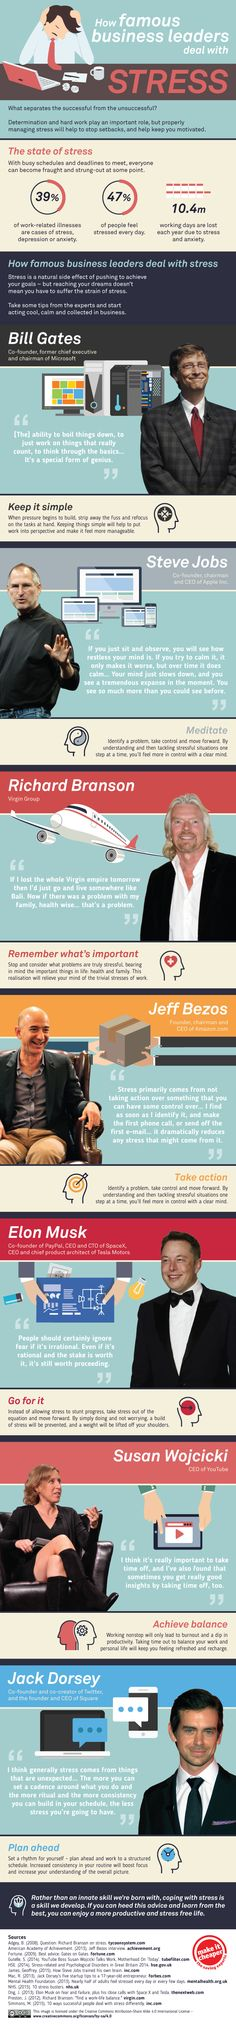 How Famous Business Leaders Deal With Stress #infographic #Stress #Health…